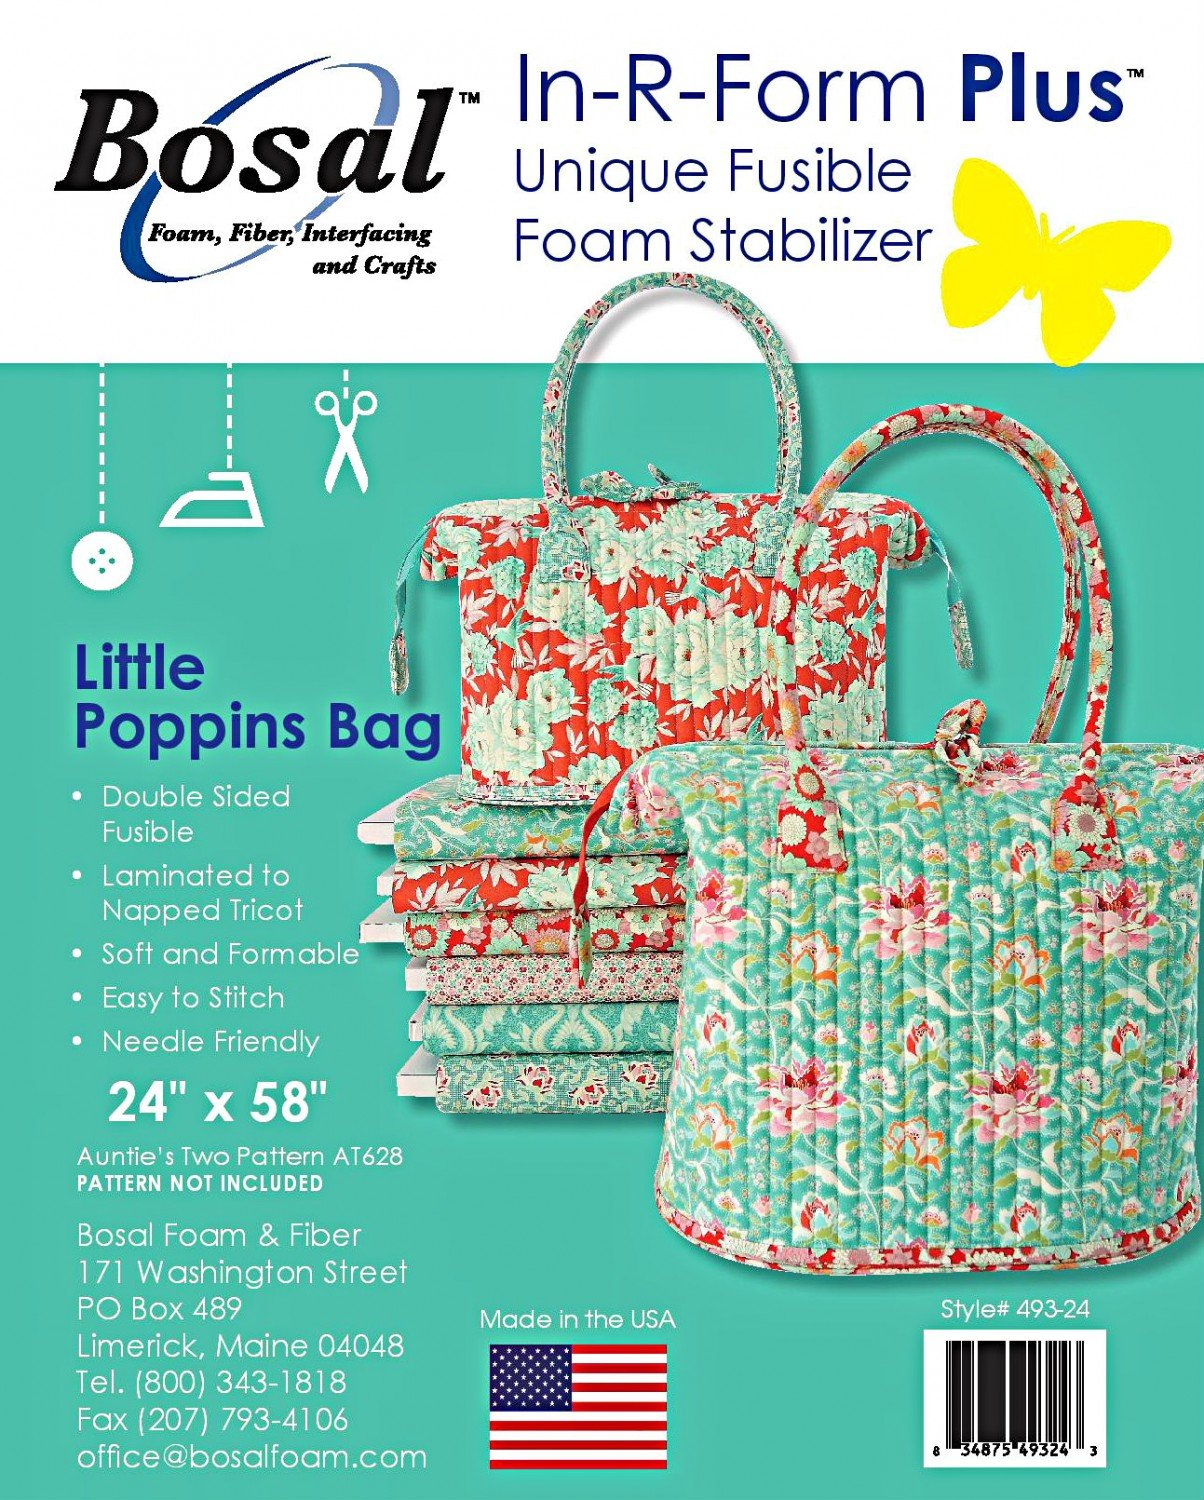 In-R-Form Plus Double Sided Fusible Foam Stabilizer - Little Poppins Bag